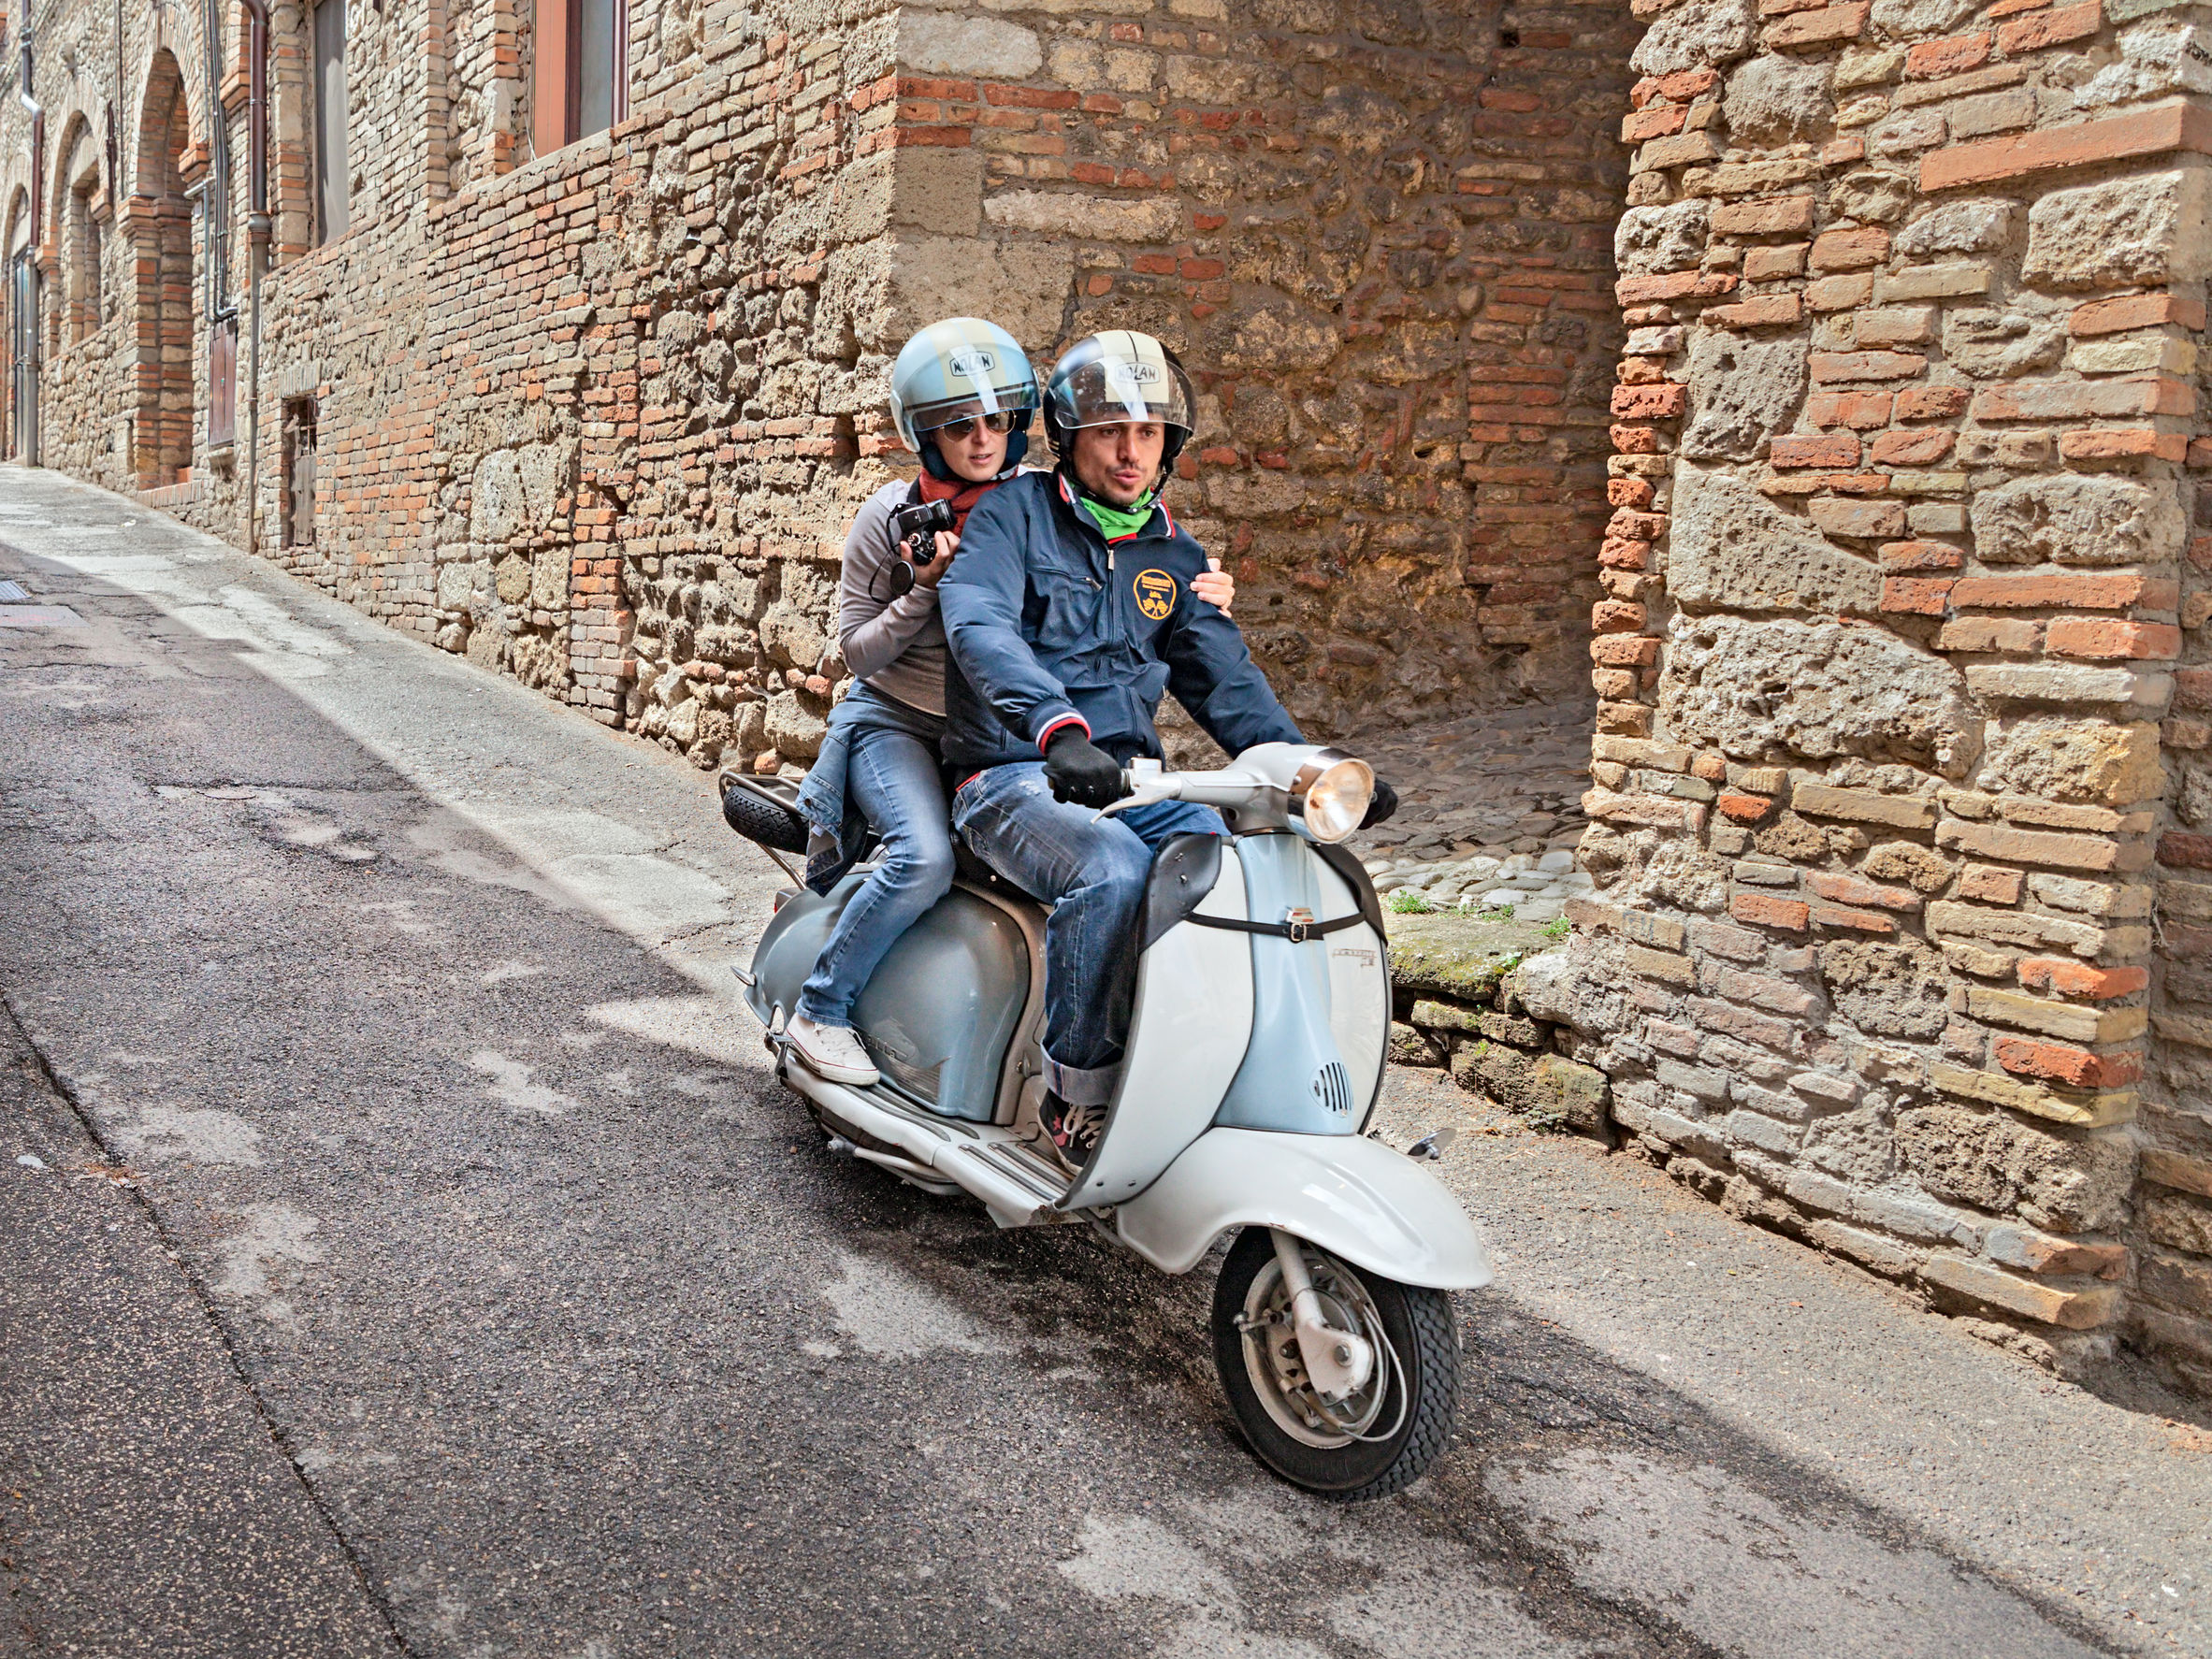 "29851802 - bertinoro (fc) italy - june 14: a couple riding a vintage scooter lambretta during the italian scooters rally ""innocenti day"" of lambretta club umbria, on june 14, 2014 in bertinoro (fc) italy"